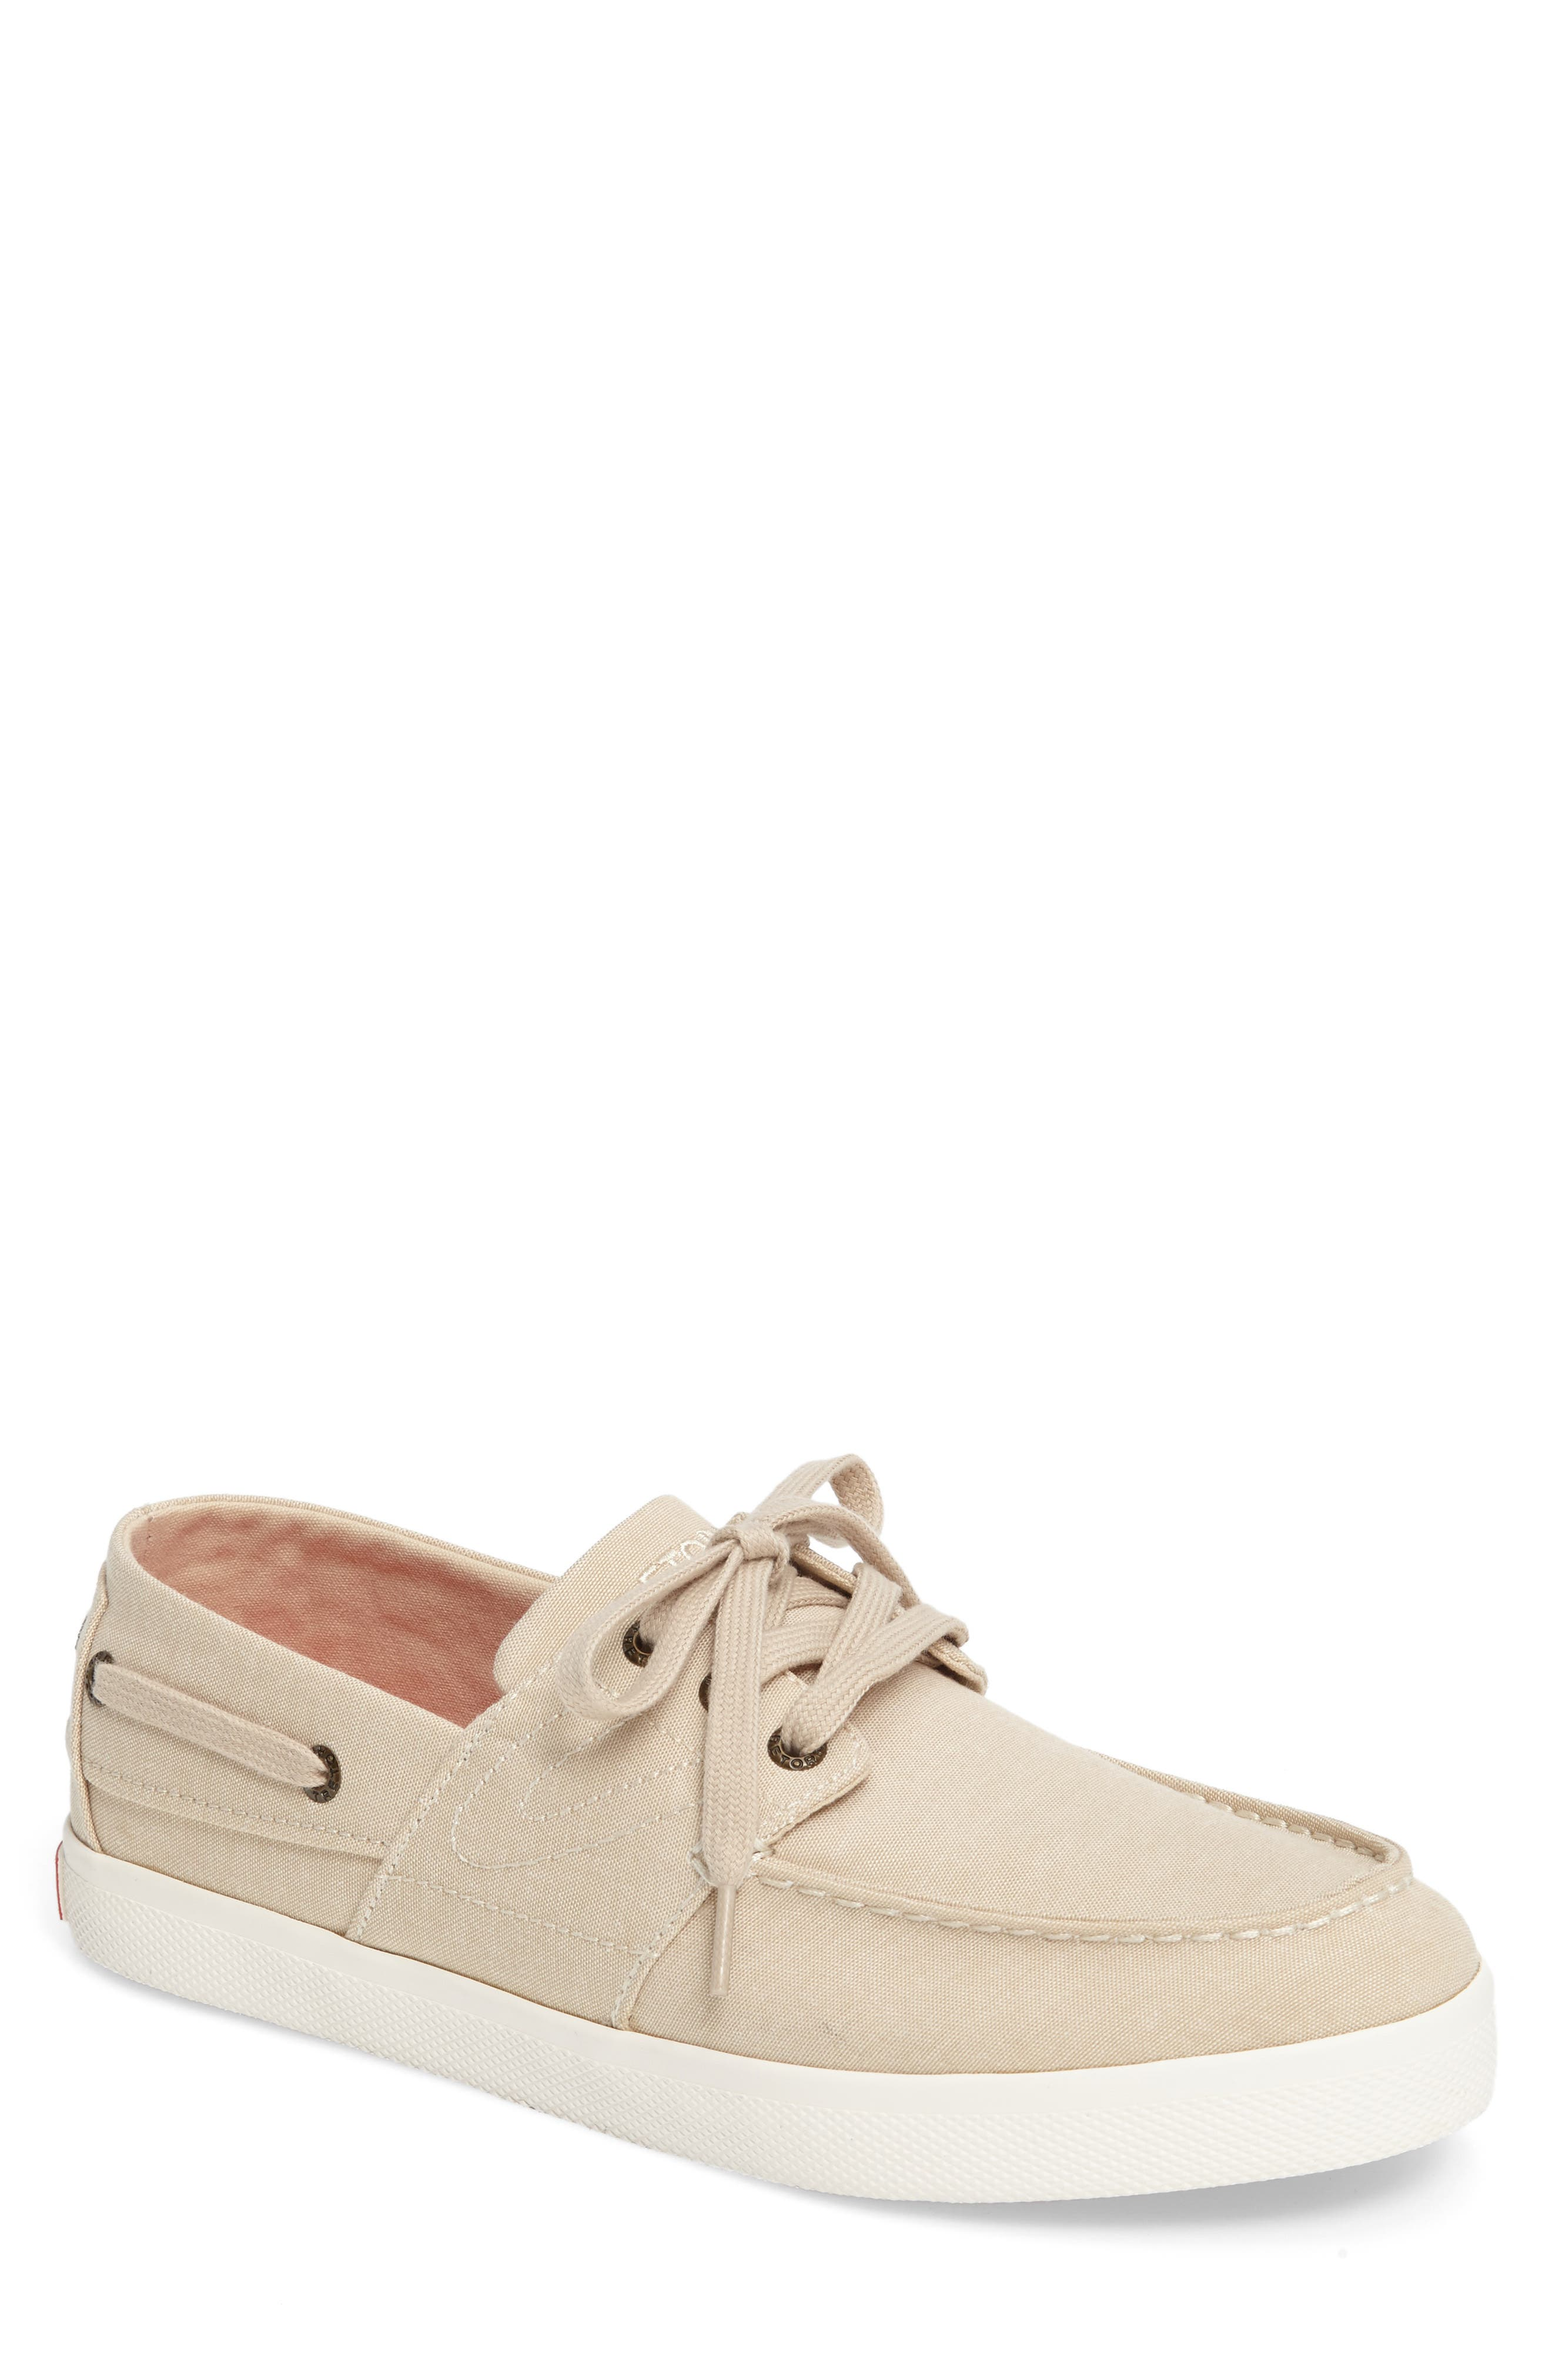 Motto Boat Shoe,                             Main thumbnail 1, color,                             OYSTER CANVAS